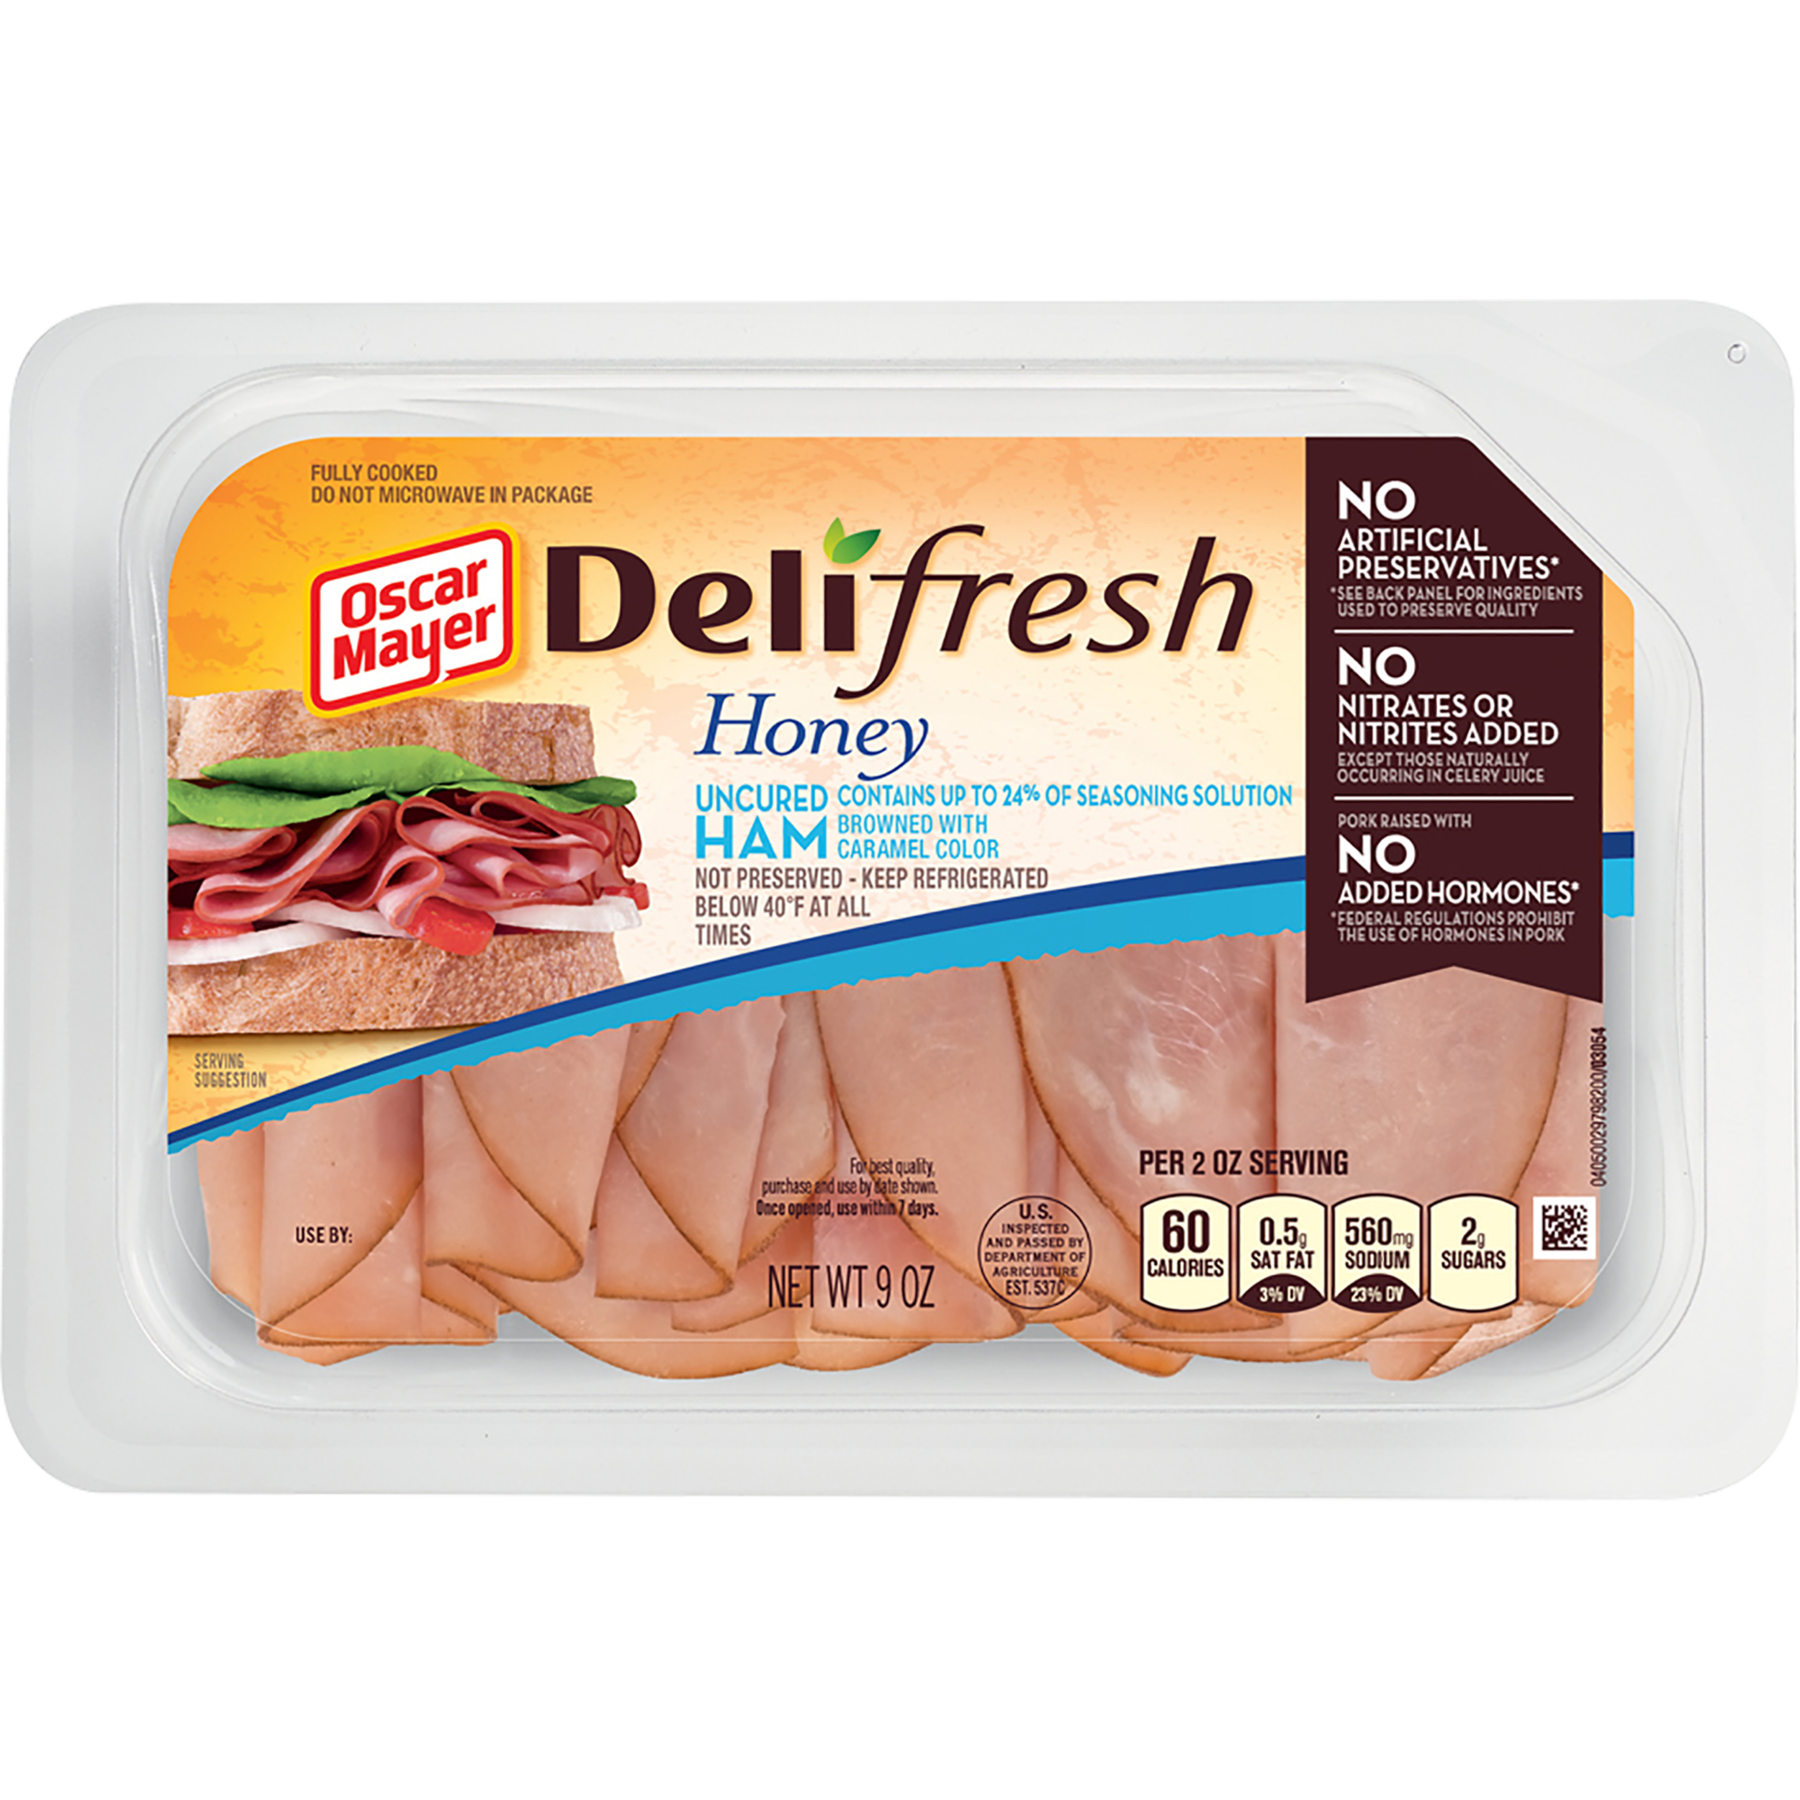 Ham transparent preserved. Oscar mayer deli fresh